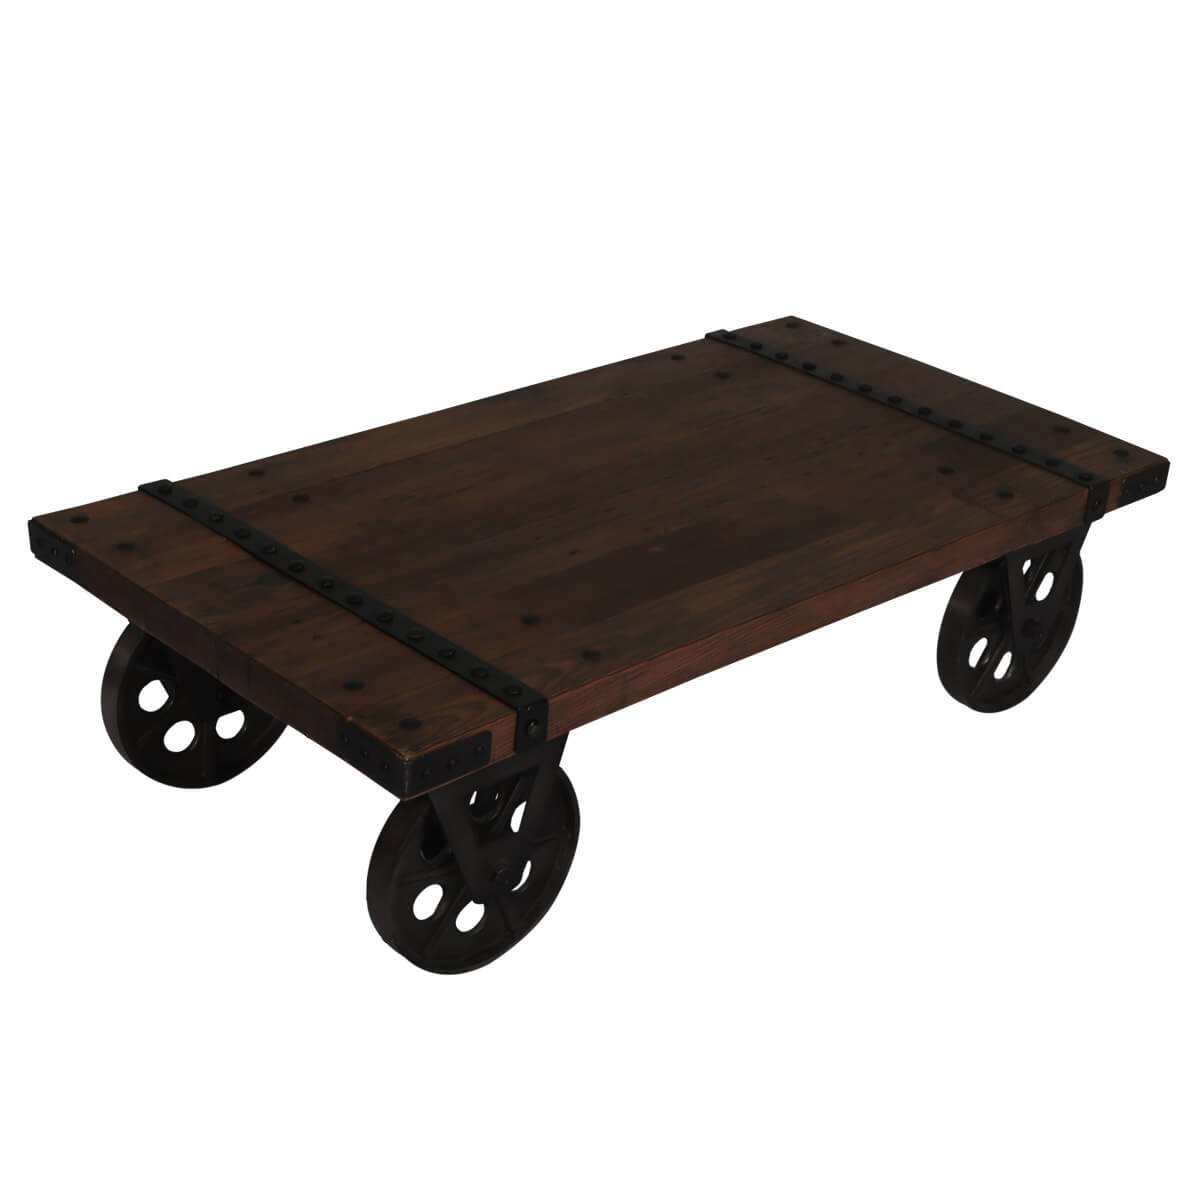 Cheap Factory Cart Coffee Tables: Somers Rustic Recycled Teak Wood Industrial Factory Cart